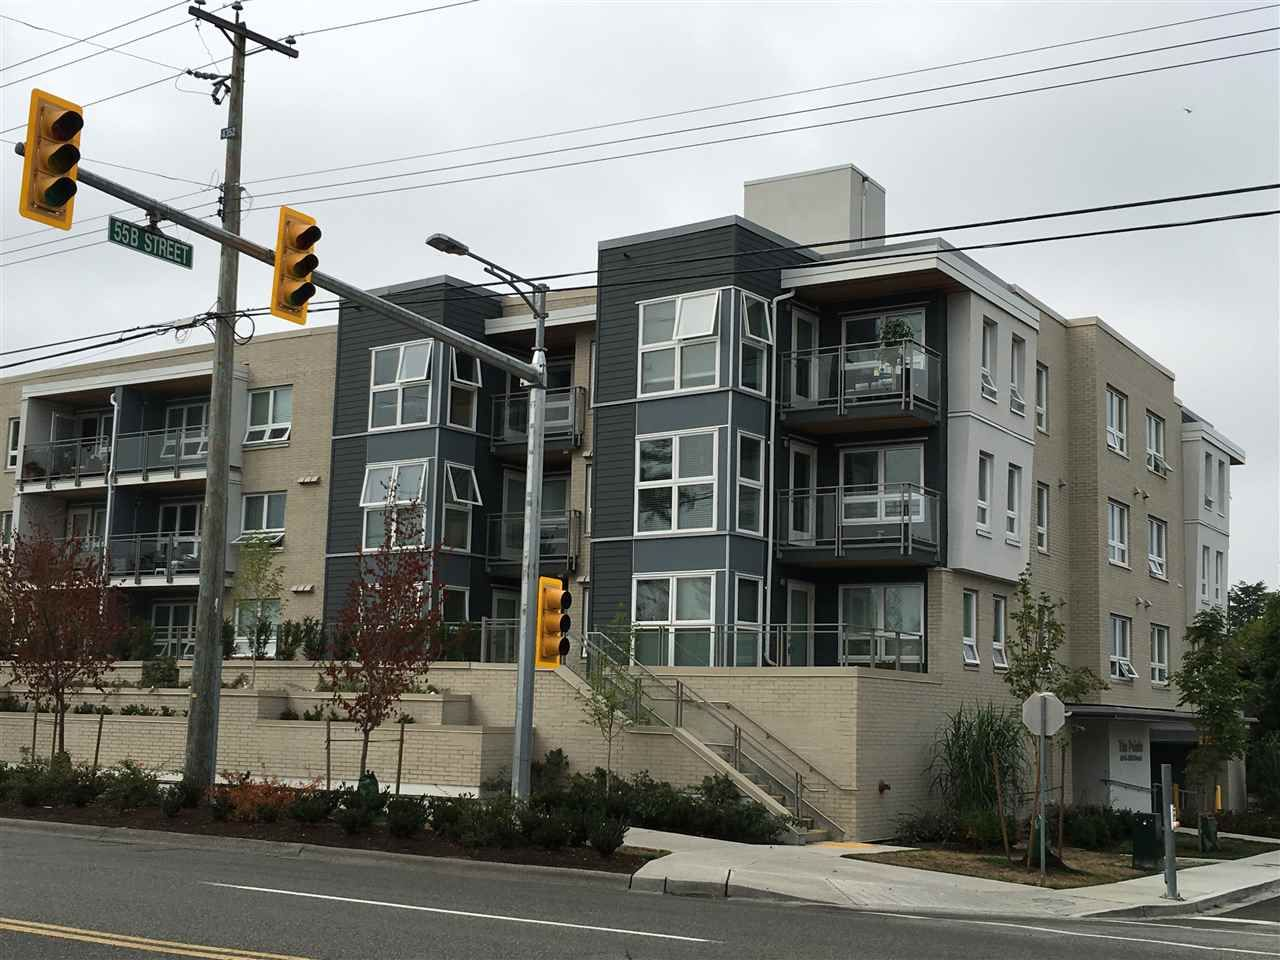 """Main Photo: 307 4815 55B Street in Delta: Hawthorne Condo for sale in """"THE POINTE"""" (Ladner)  : MLS®# R2203810"""